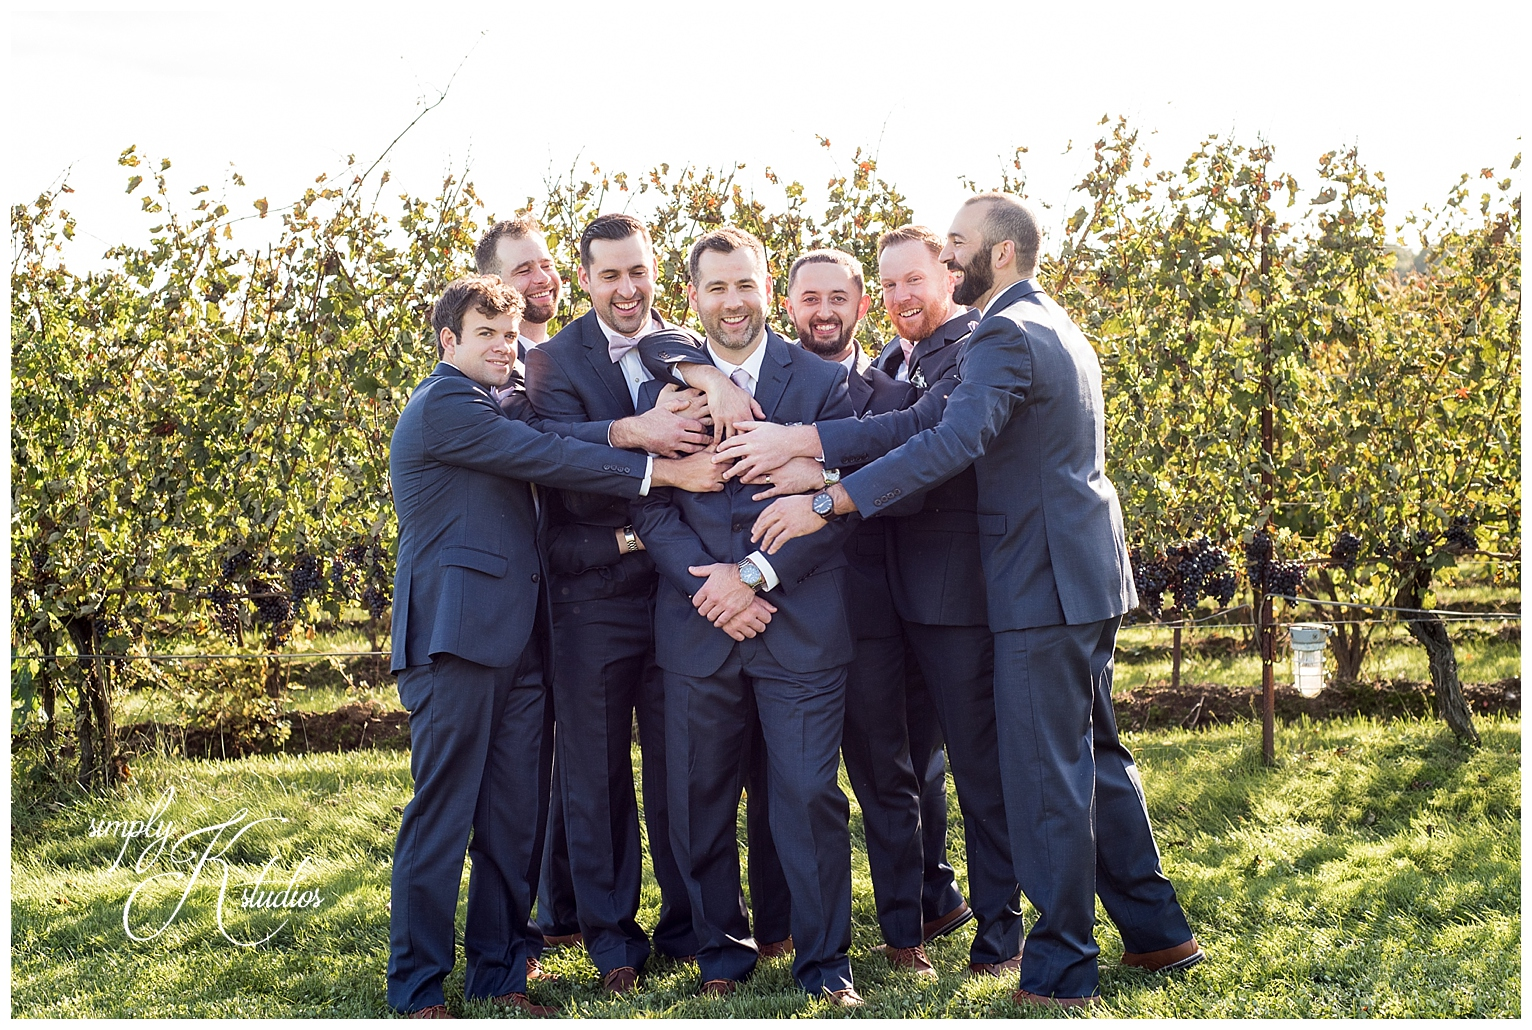 59 Candid Groomsmen Photos.jpg